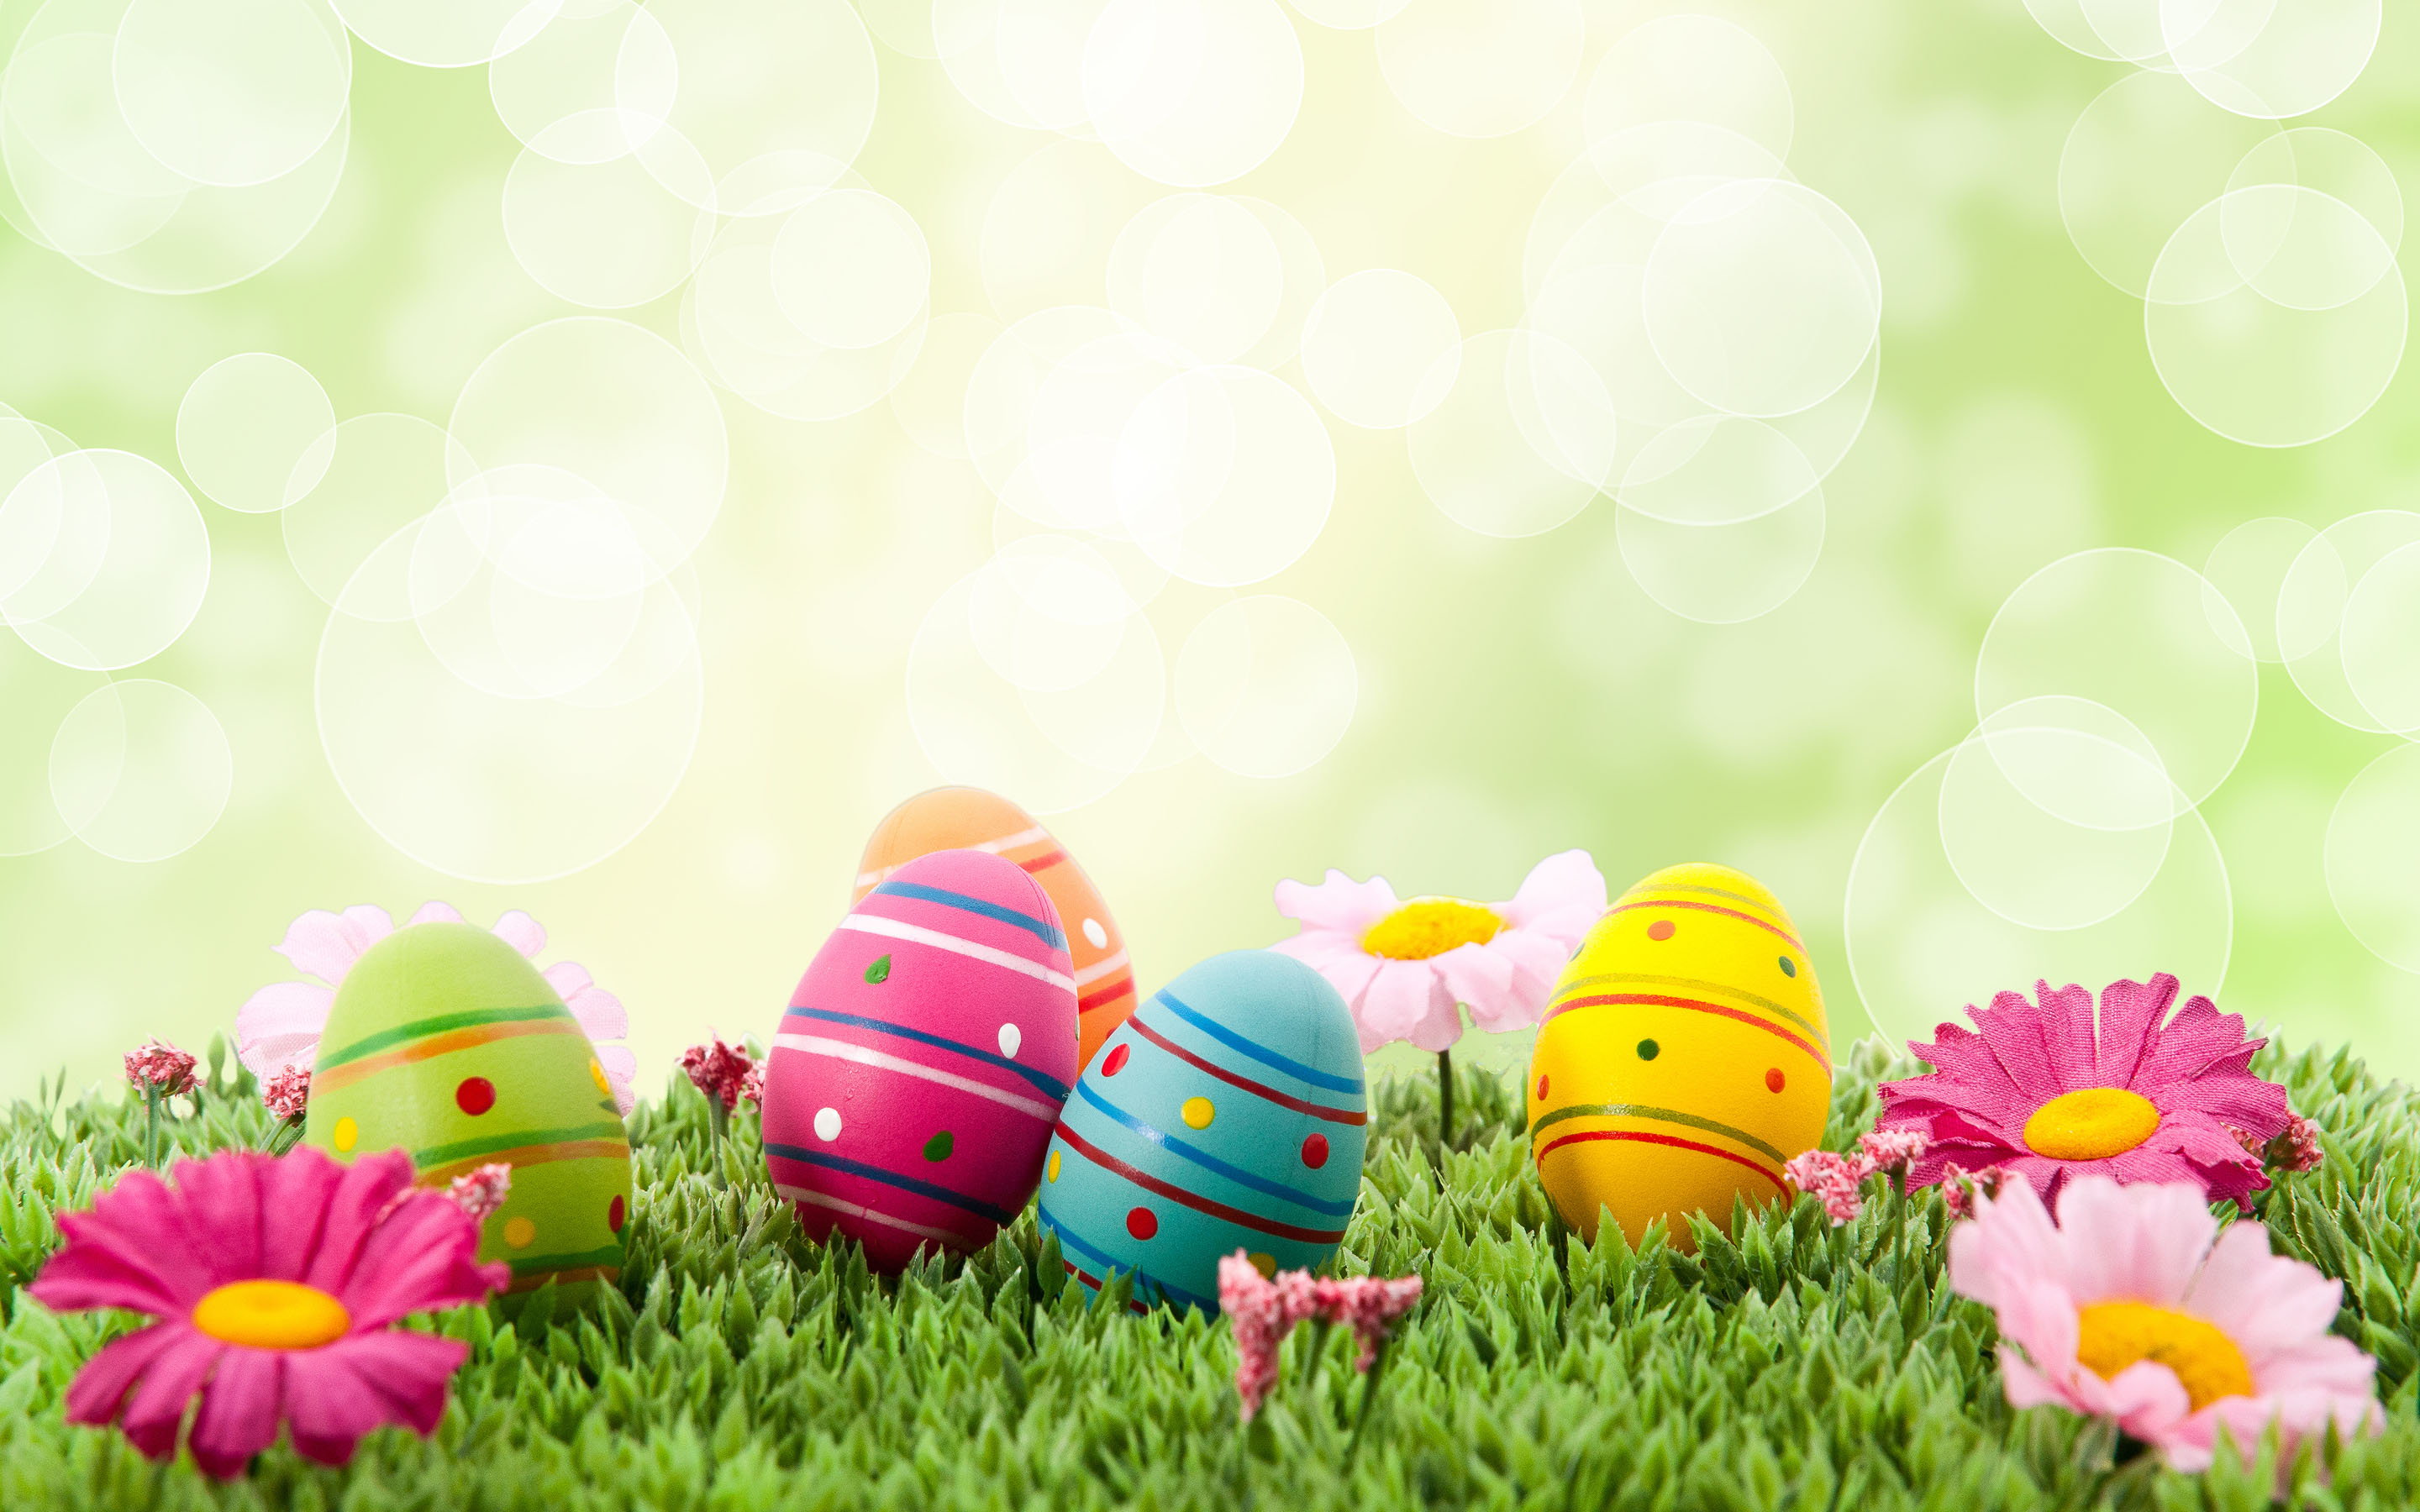 1600x900 Wallpapers Hd Cars Easter Background Wallpaper 2880x1800 26383